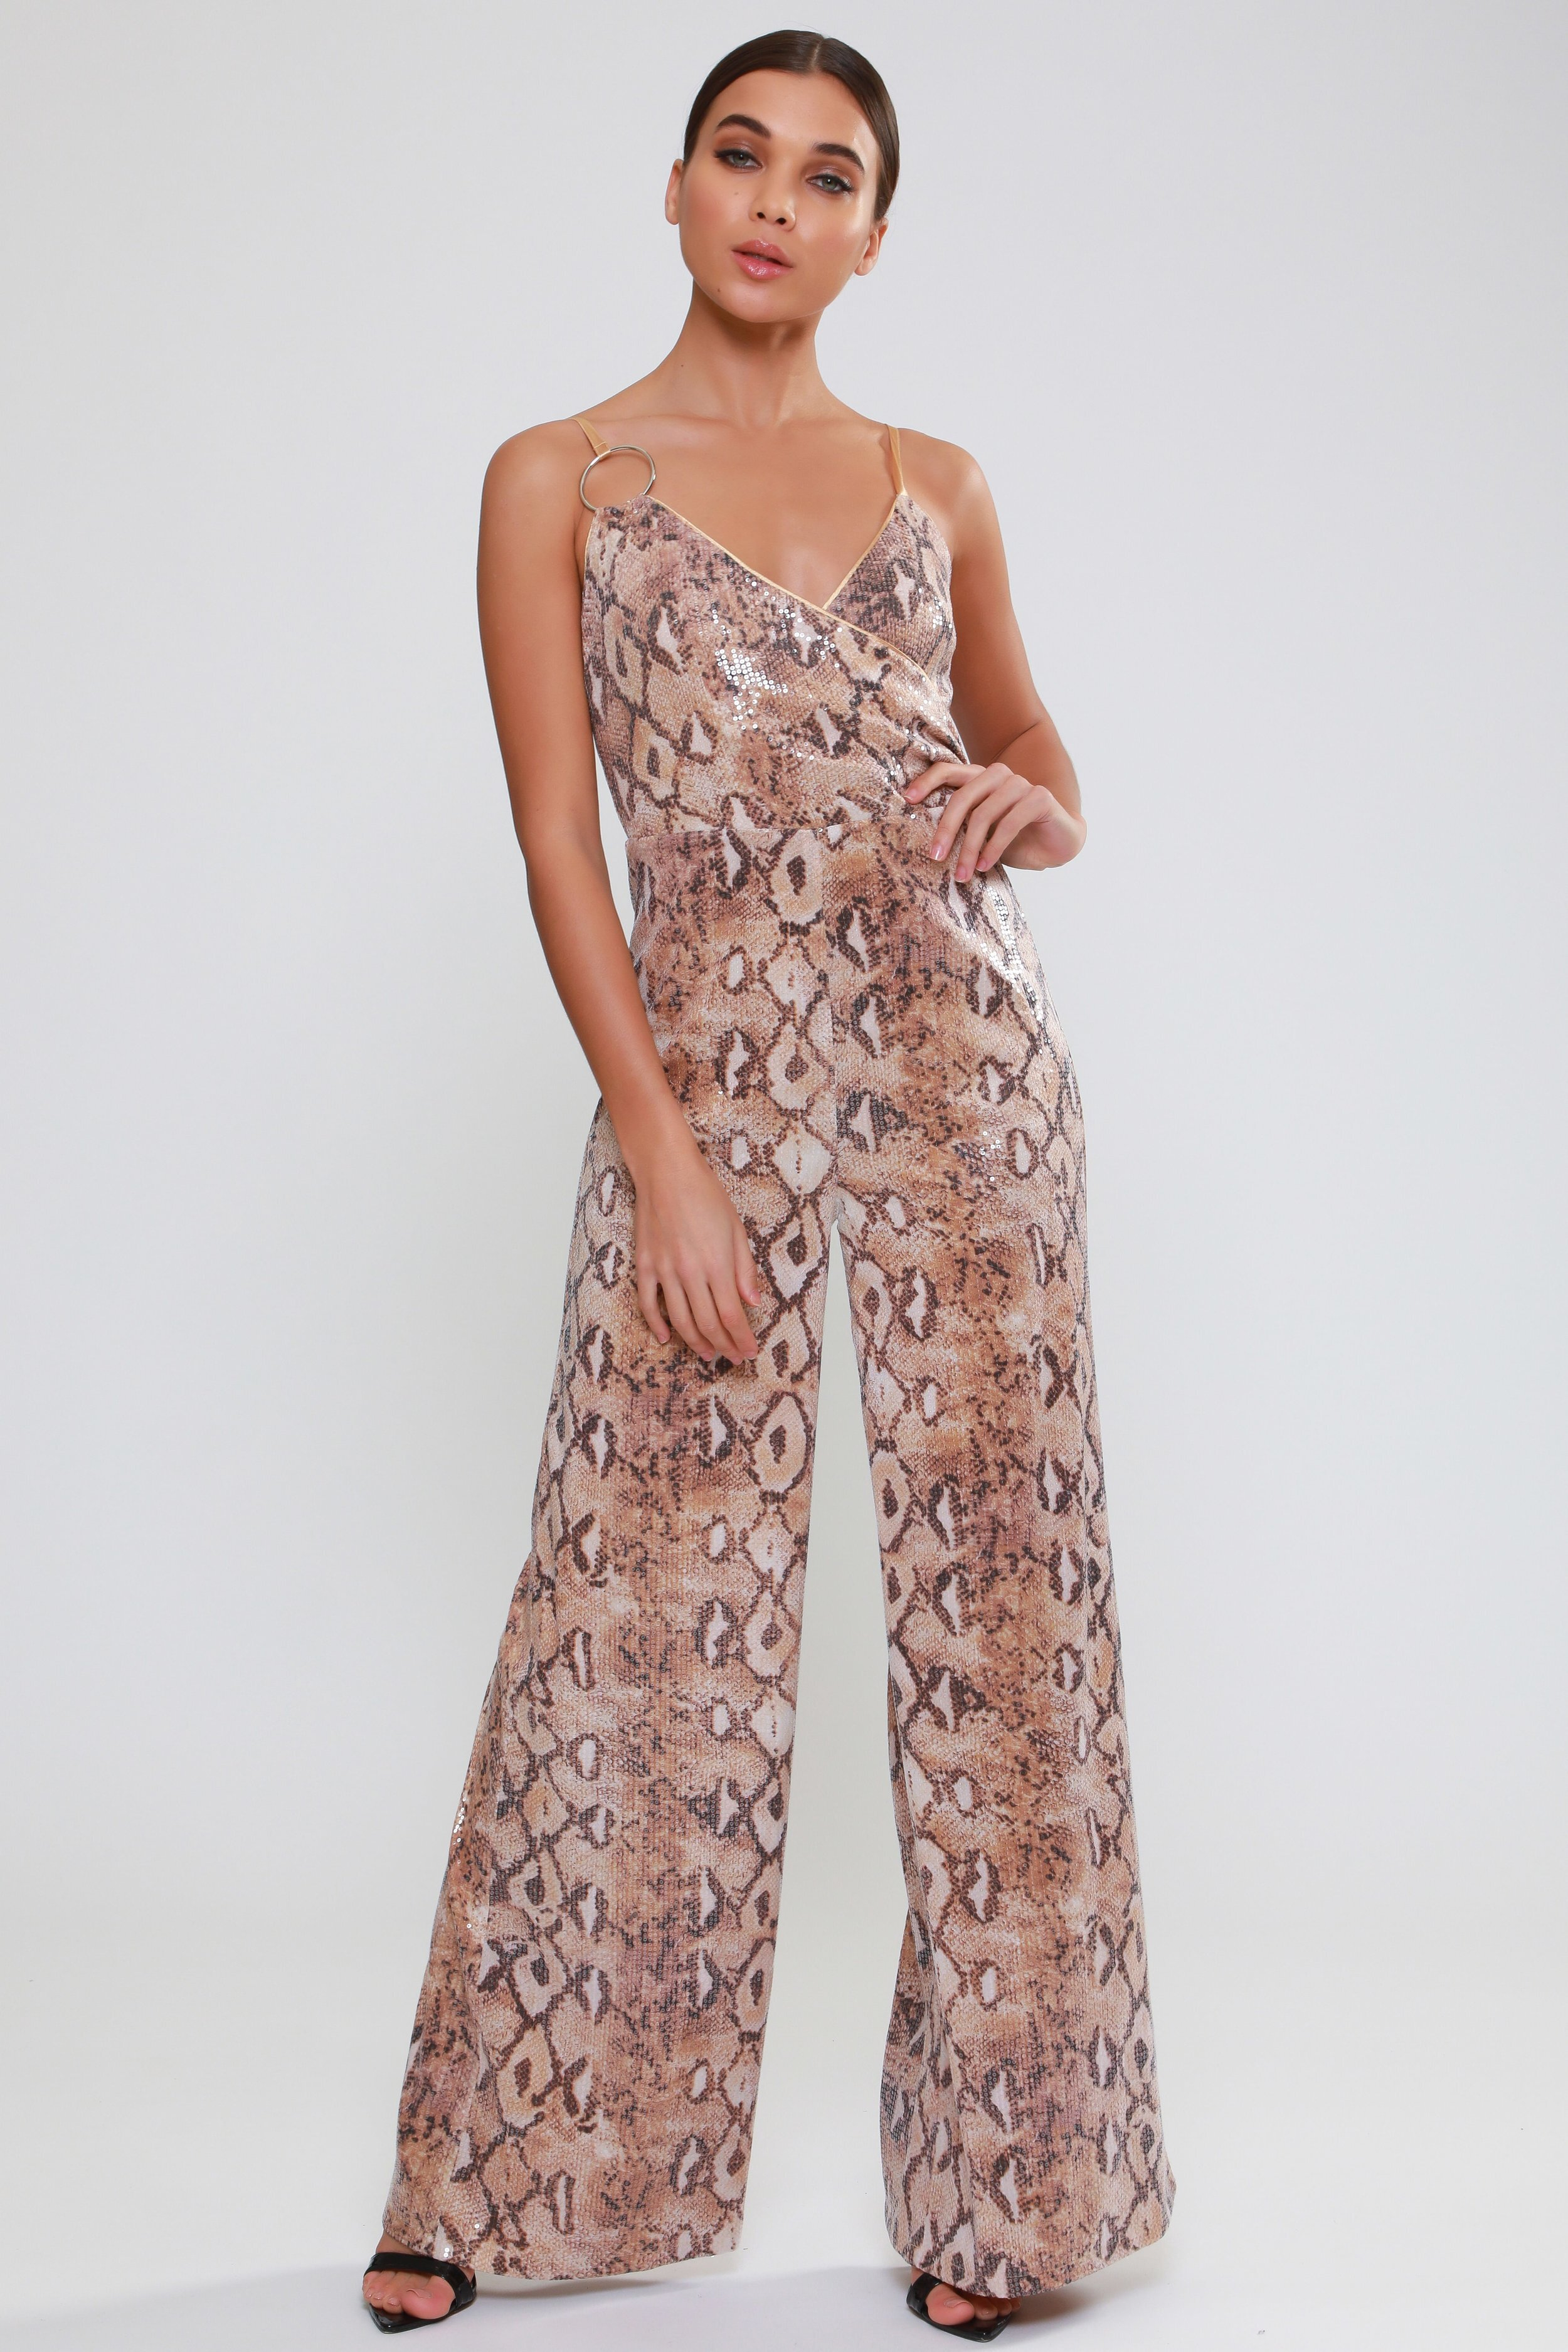 Ring Detail Snake  Print Jumpsuit   £85.00